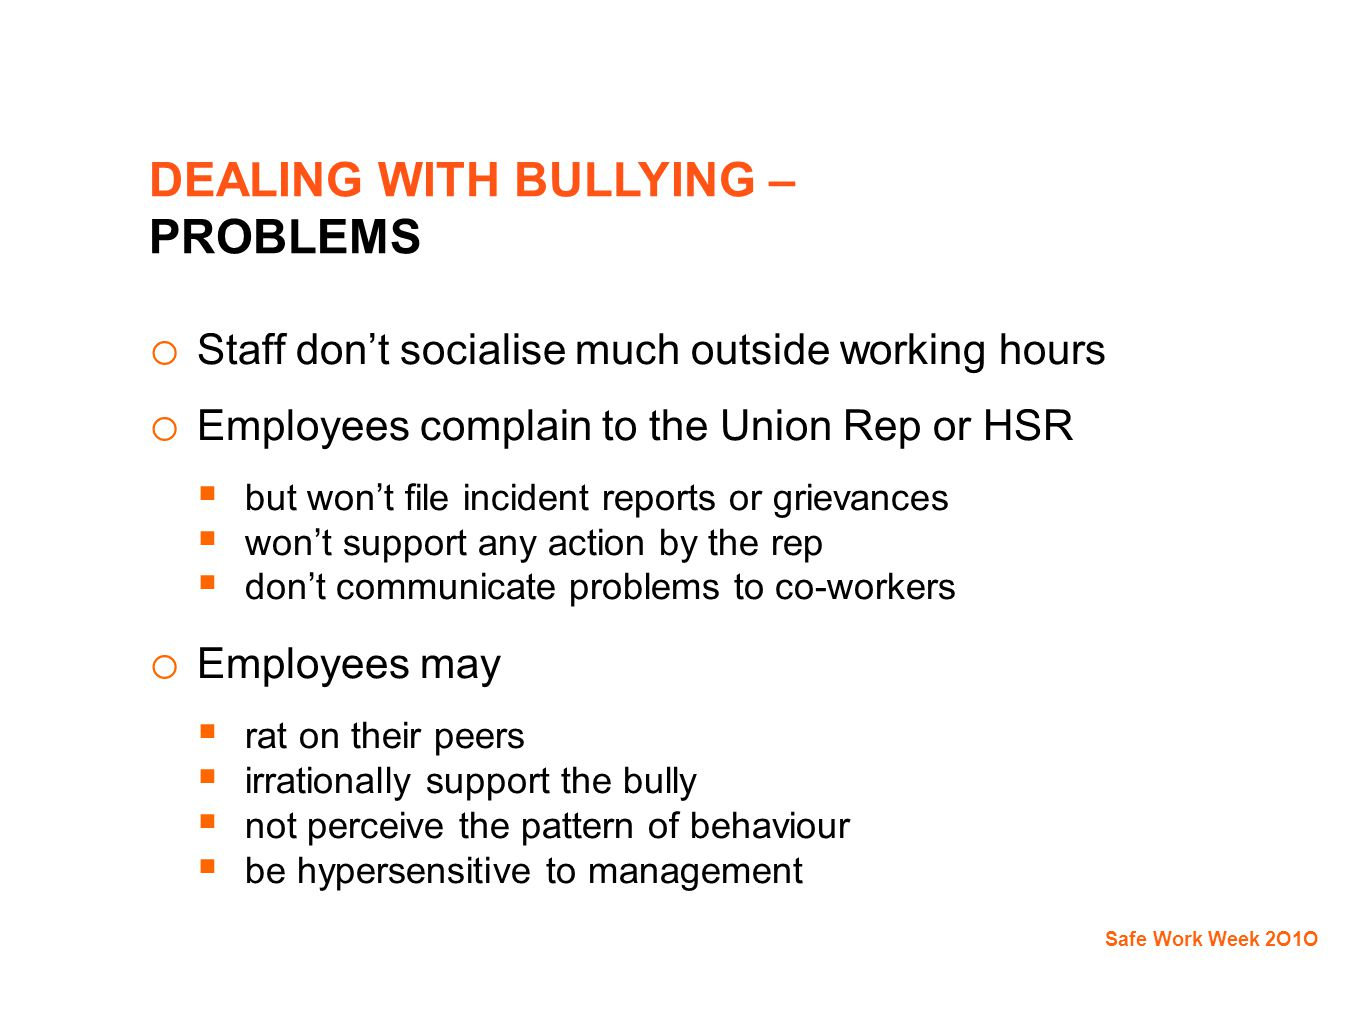 DEALING WITH BULLYING – PROBLEMS o Staff don't socialise much outside working hours o Employees complain to the Union Rep or HSR  but won't file incident reports or grievances  won't support any action by the rep  don't communicate problems to co-workers o Employees may  rat on their peers  irrationally support the bully  not perceive the pattern of behaviour  be hypersensitive to management Safe Work Week 2O1O